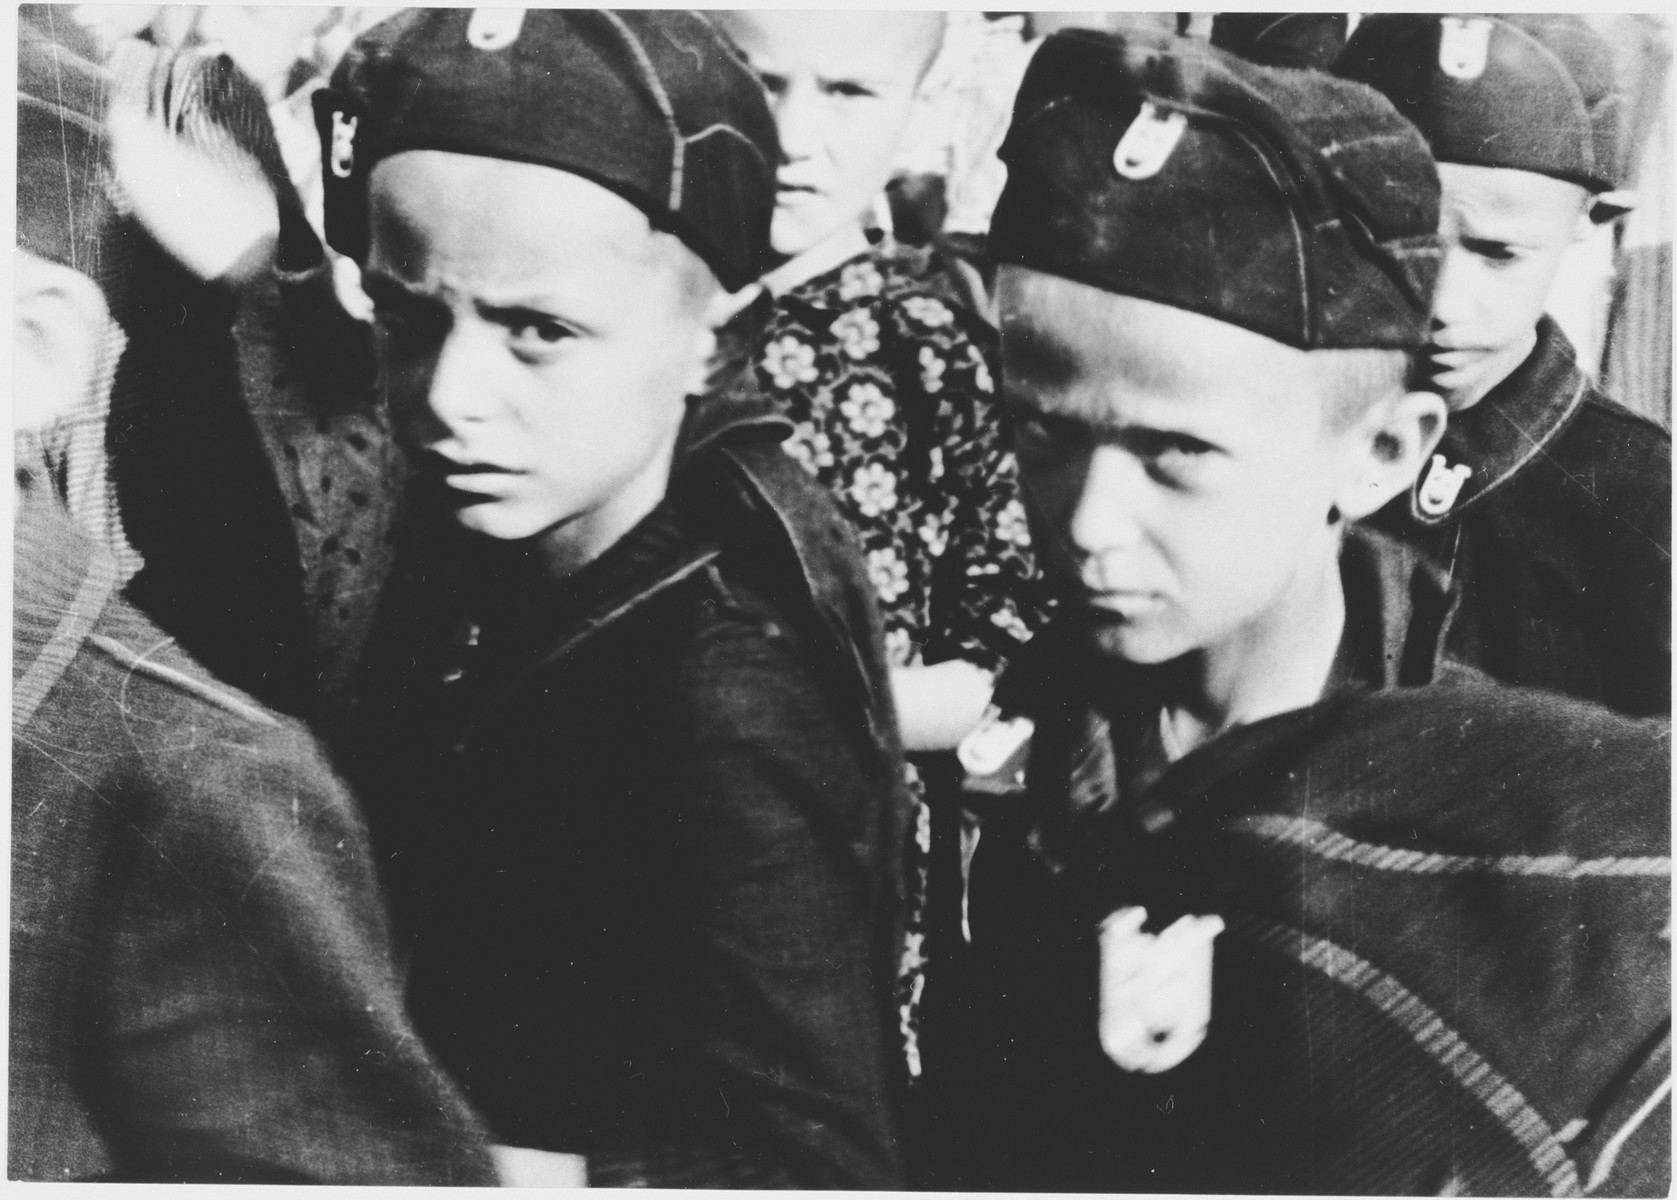 Serbian boys dressed in Ustasa uniforms are assembled in the Stara Gradiska concentration camp.  The children were called Lubruric's Little Serbs after Maks Lubruric, the commandant of the Jasenovac concentration camp.  Dressing the imprisoned children in Ustasa uniforms was part of the Croatian regime's effort to reeducate the Serbian boys from the Kozara region.